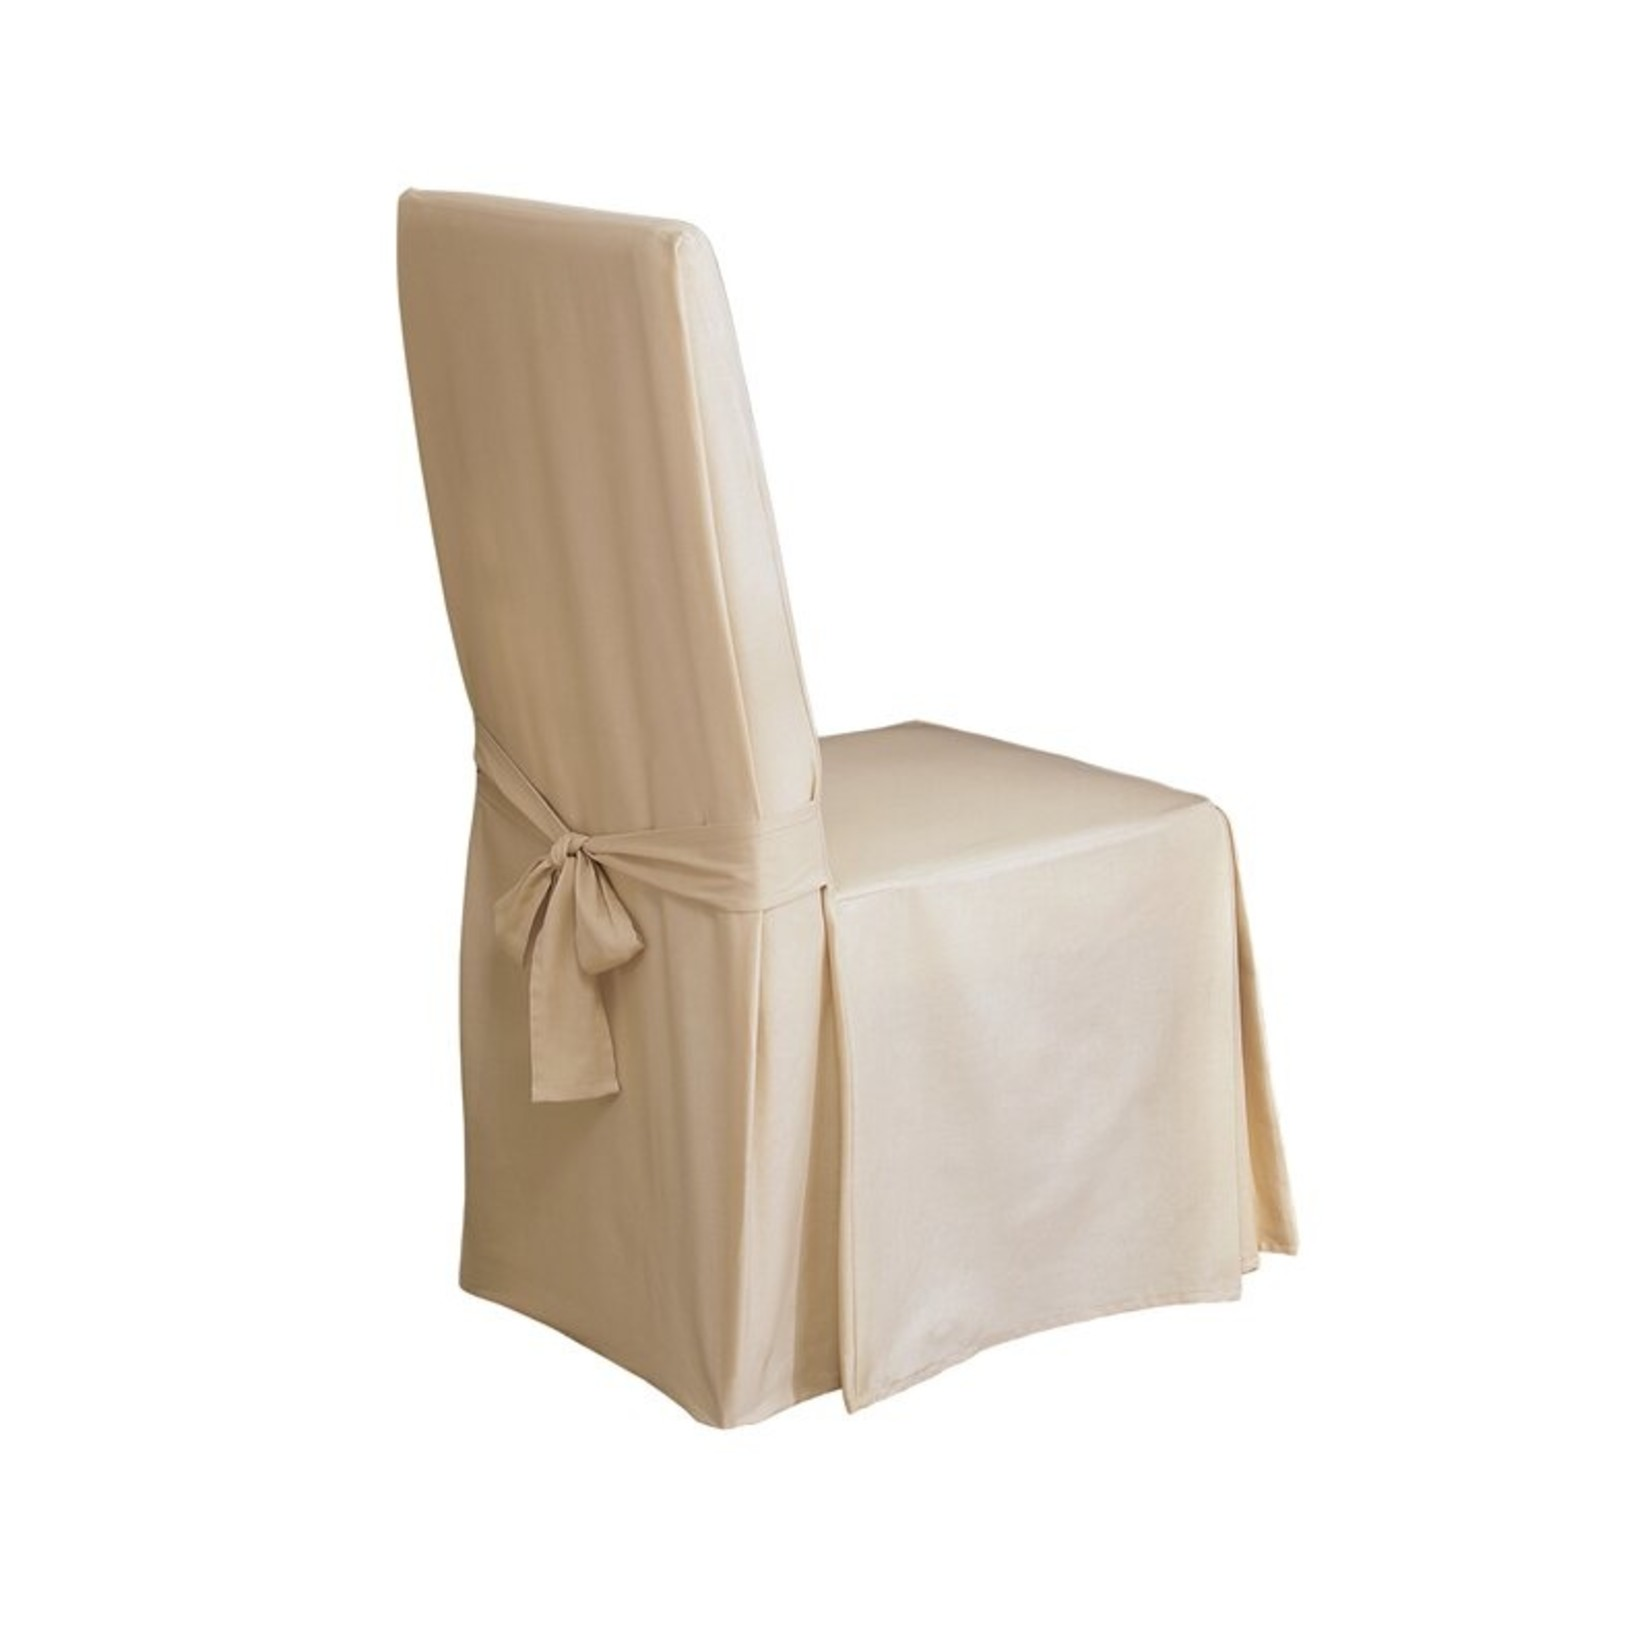 *Dining Chair Slipcover - Natural - Final Sale